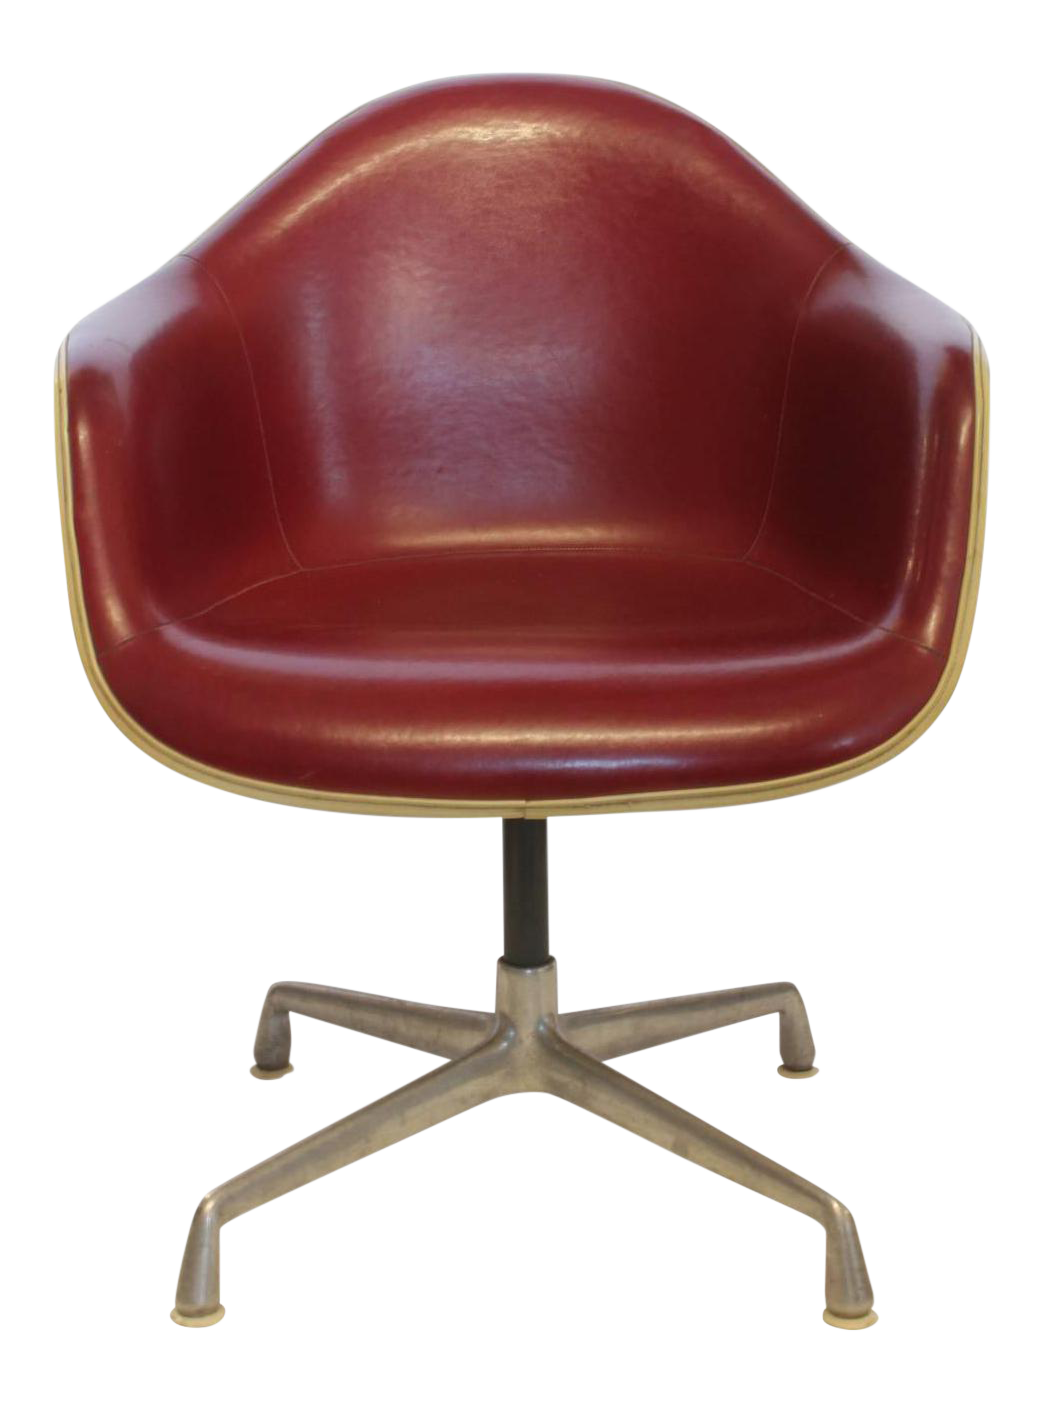 office bucket chair. Charles Eames For Herman Miller Swivel Bucket Chair Office